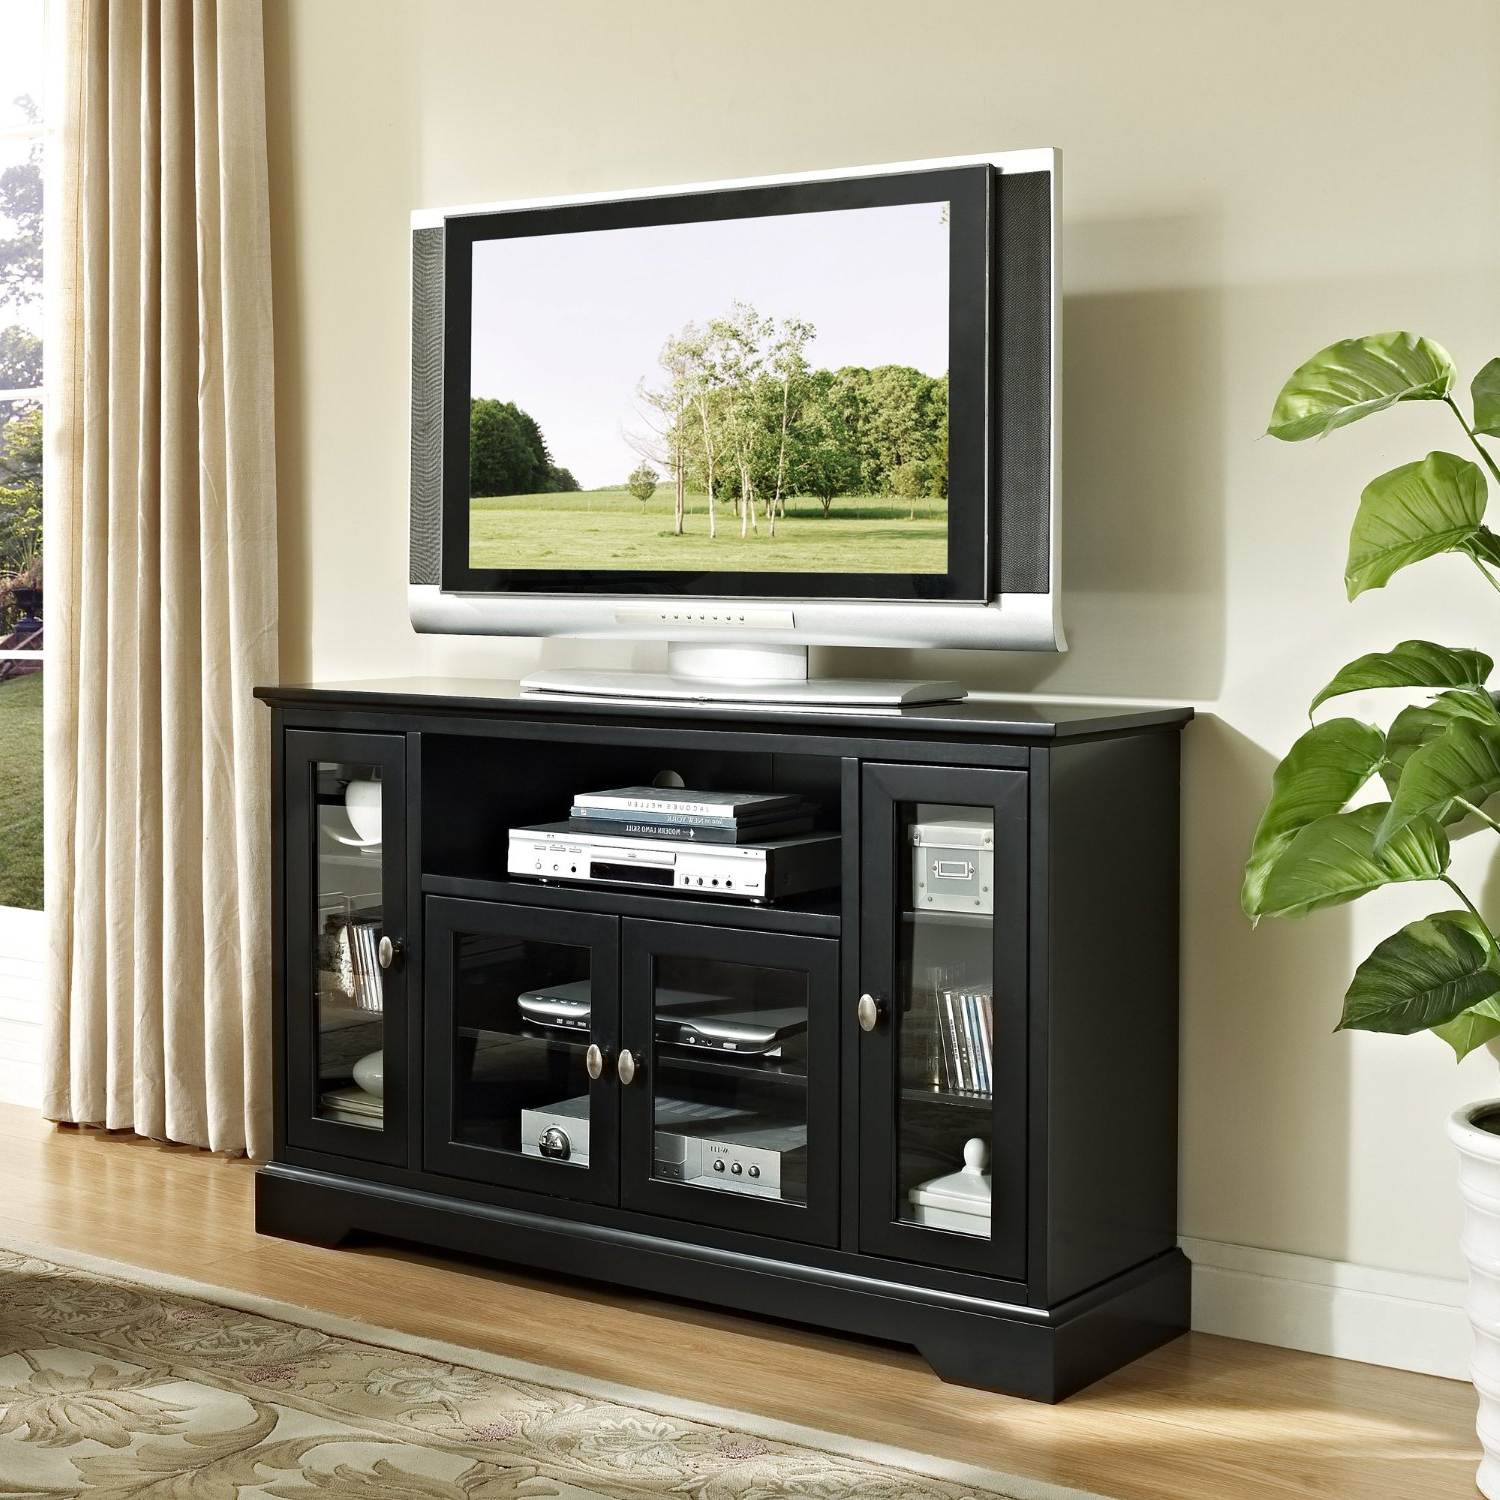 Modern Tv Stand Ikea Hemnes Entertainment Wall Units With Fireplace Regarding Forma 65 Inch Tv Stands (Gallery 9 of 20)